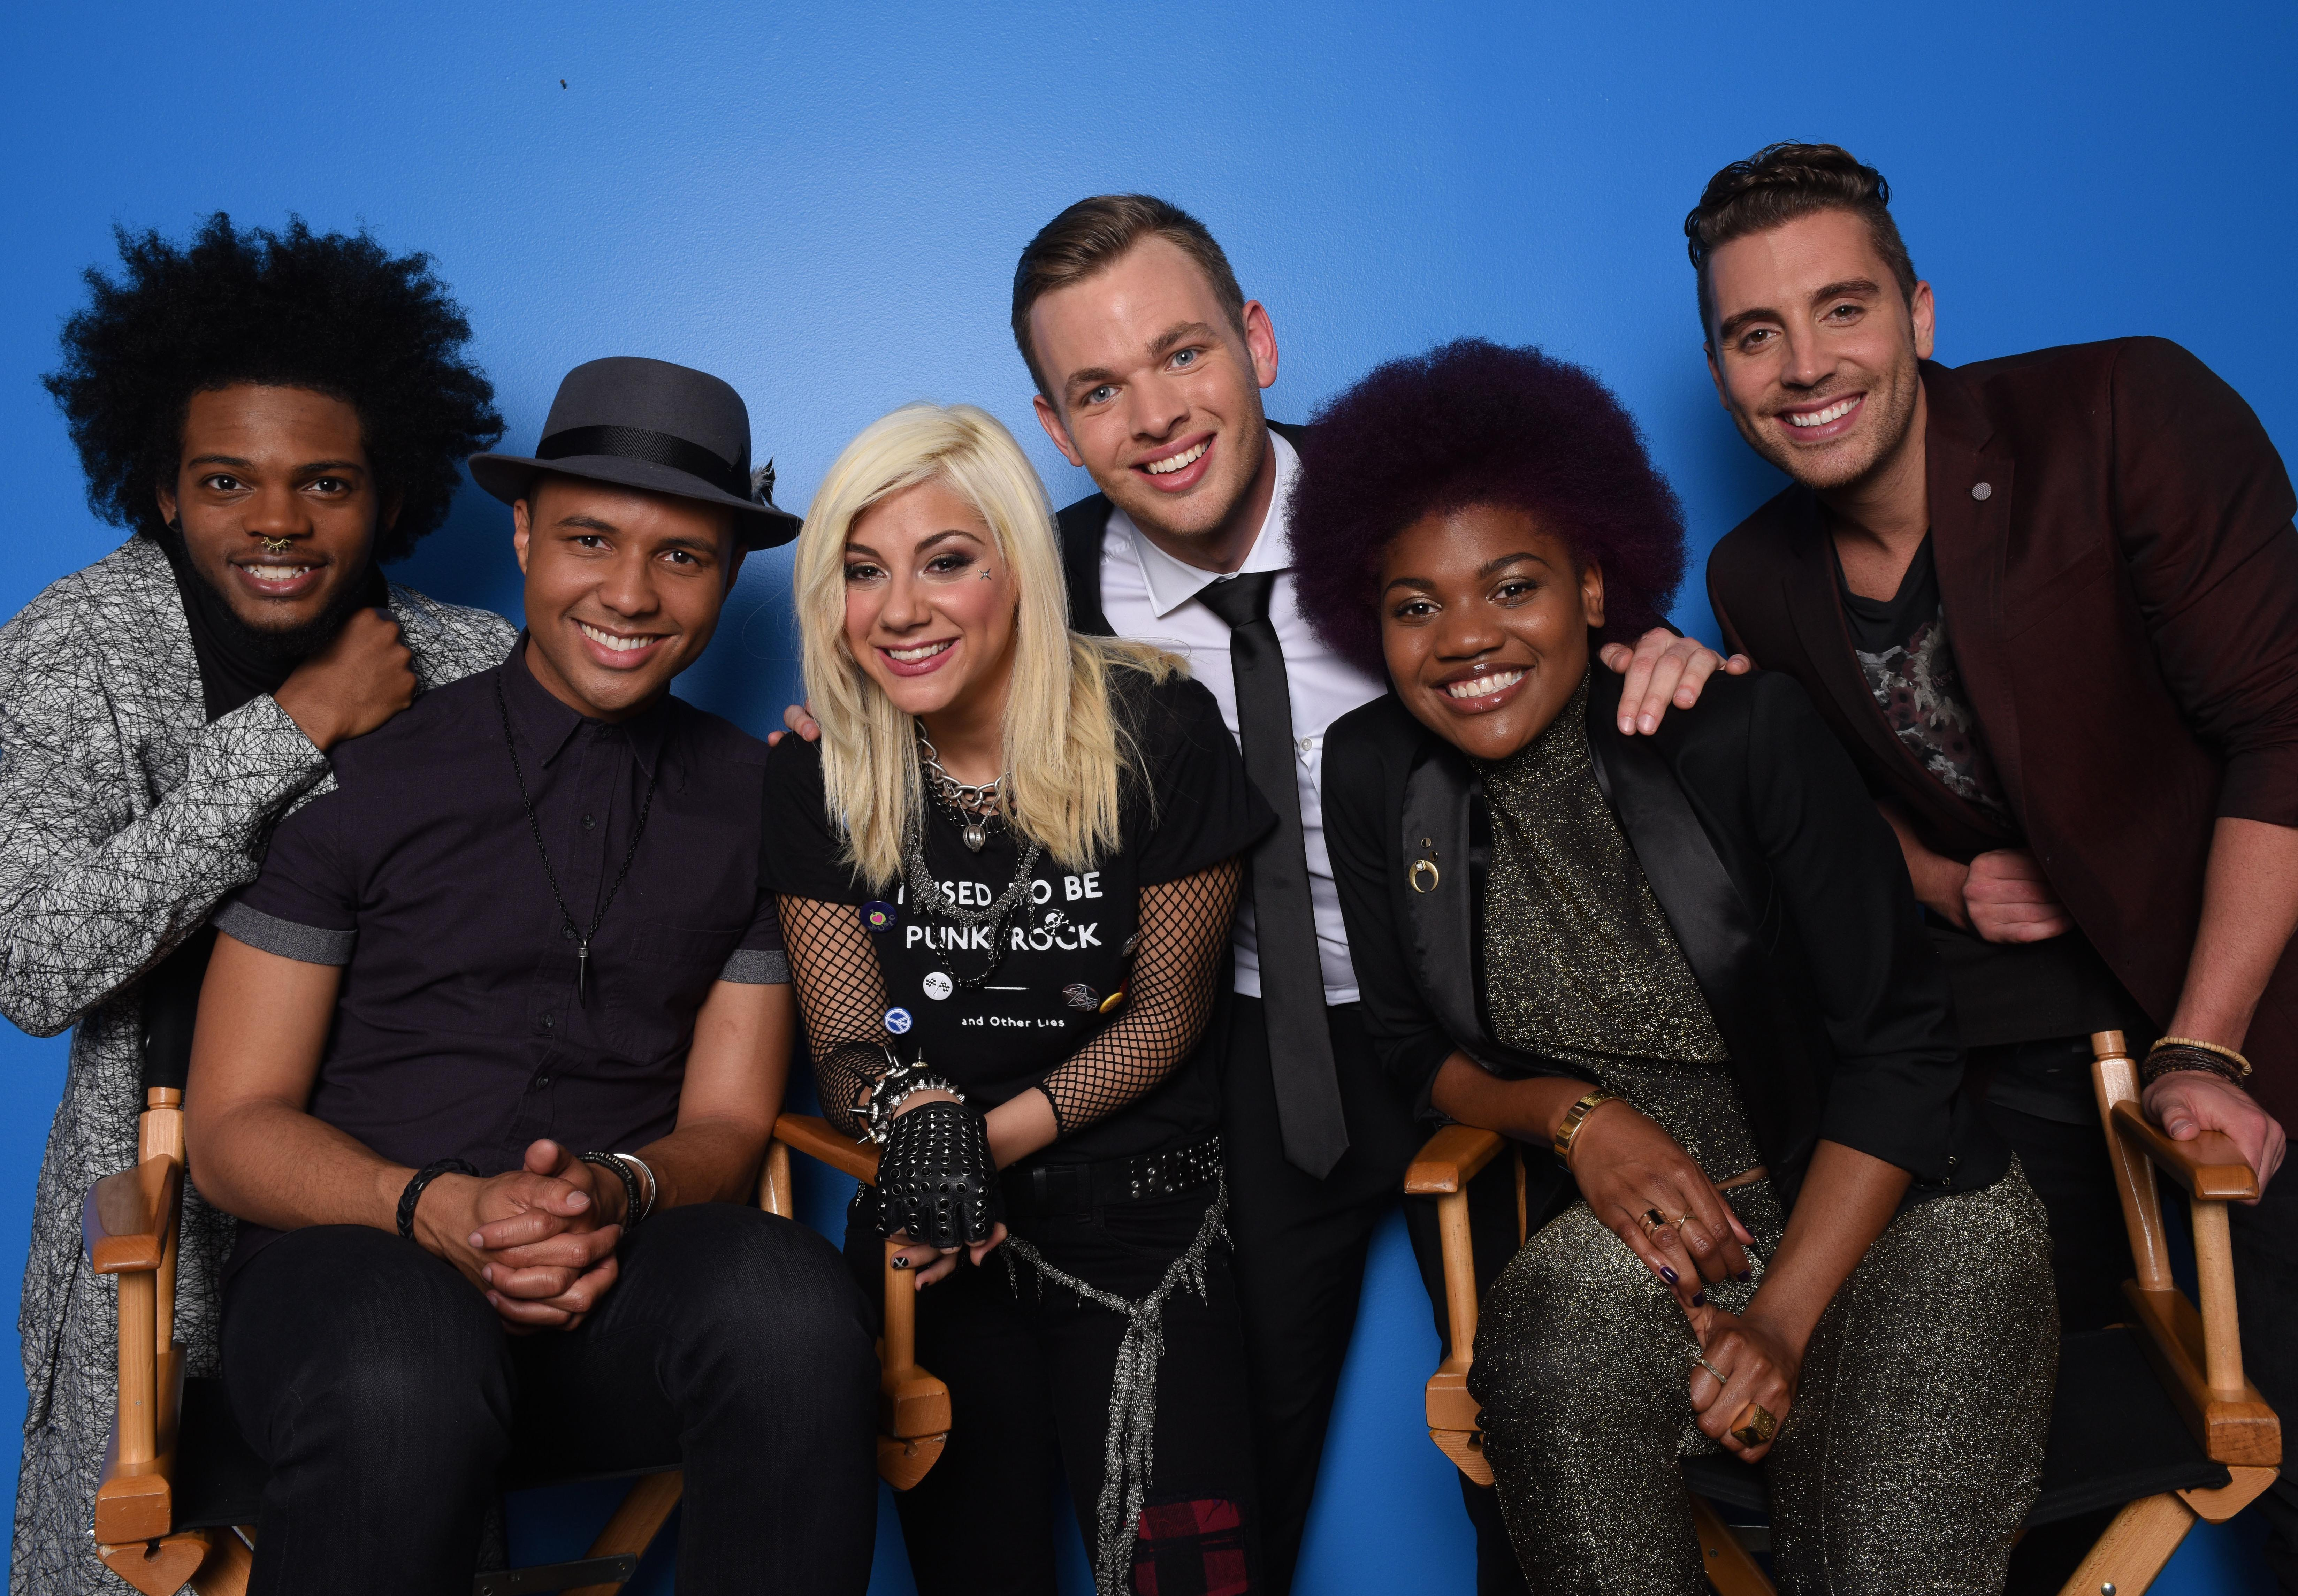 American Idol: What Should the Top 6 Sing for 'Arena Anthems' Week?